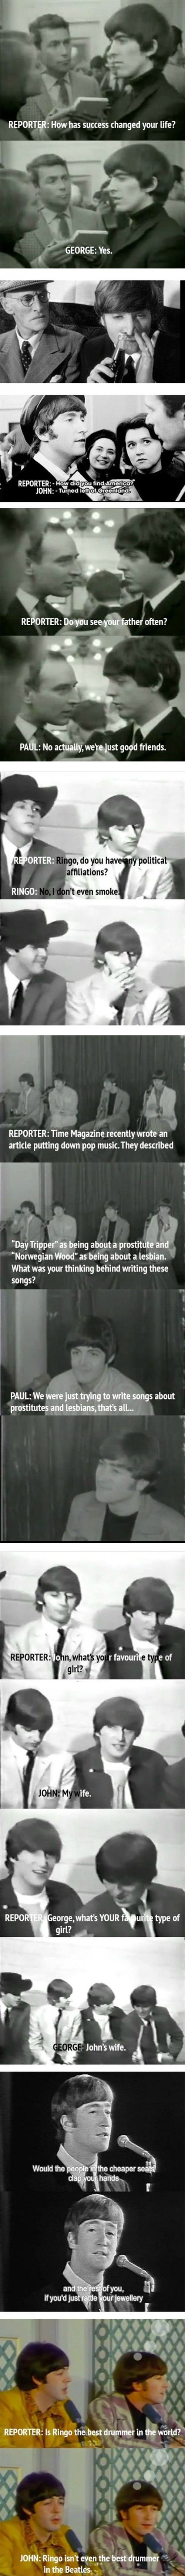 The Beatles were pretty funny. Great Beatles jokes and humorous quotes. Black and white photos. #undonestar